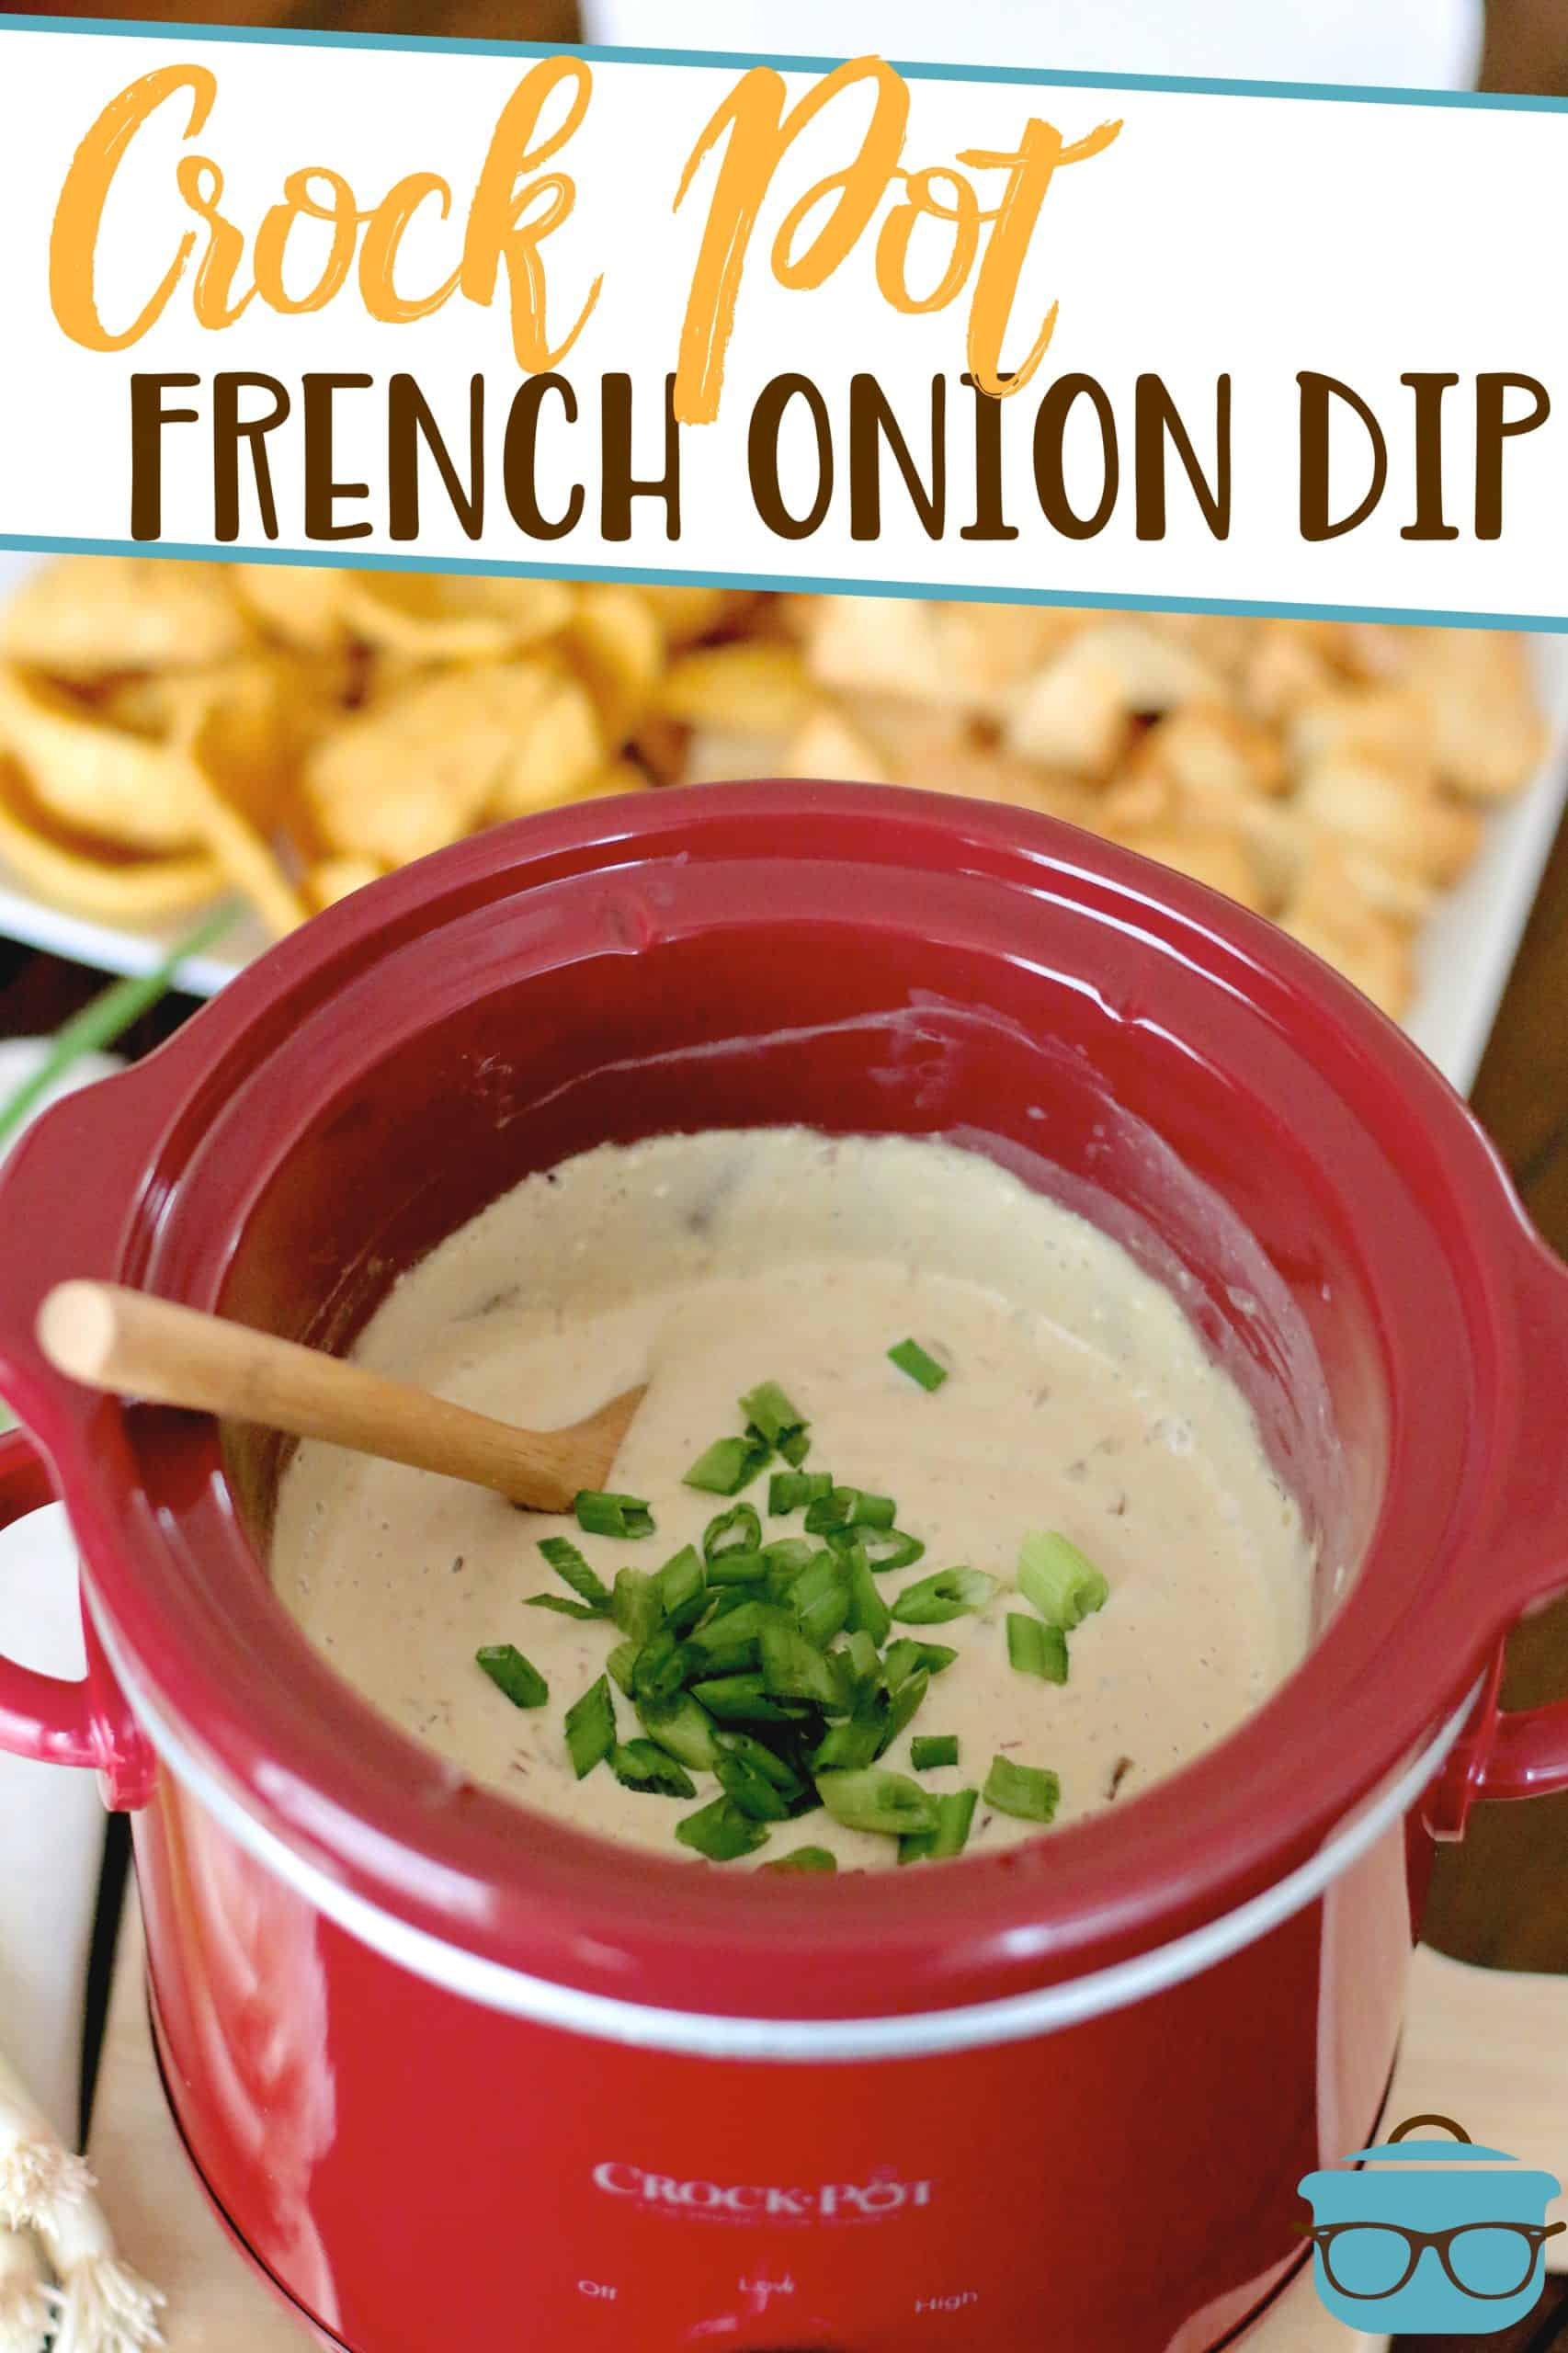 This Crock Pot French Onion Dip is an easy recipe made with cream cheese, French onion soup, and sour cream! So good and a must-make! #frenchoniondip #superbowlsnacks